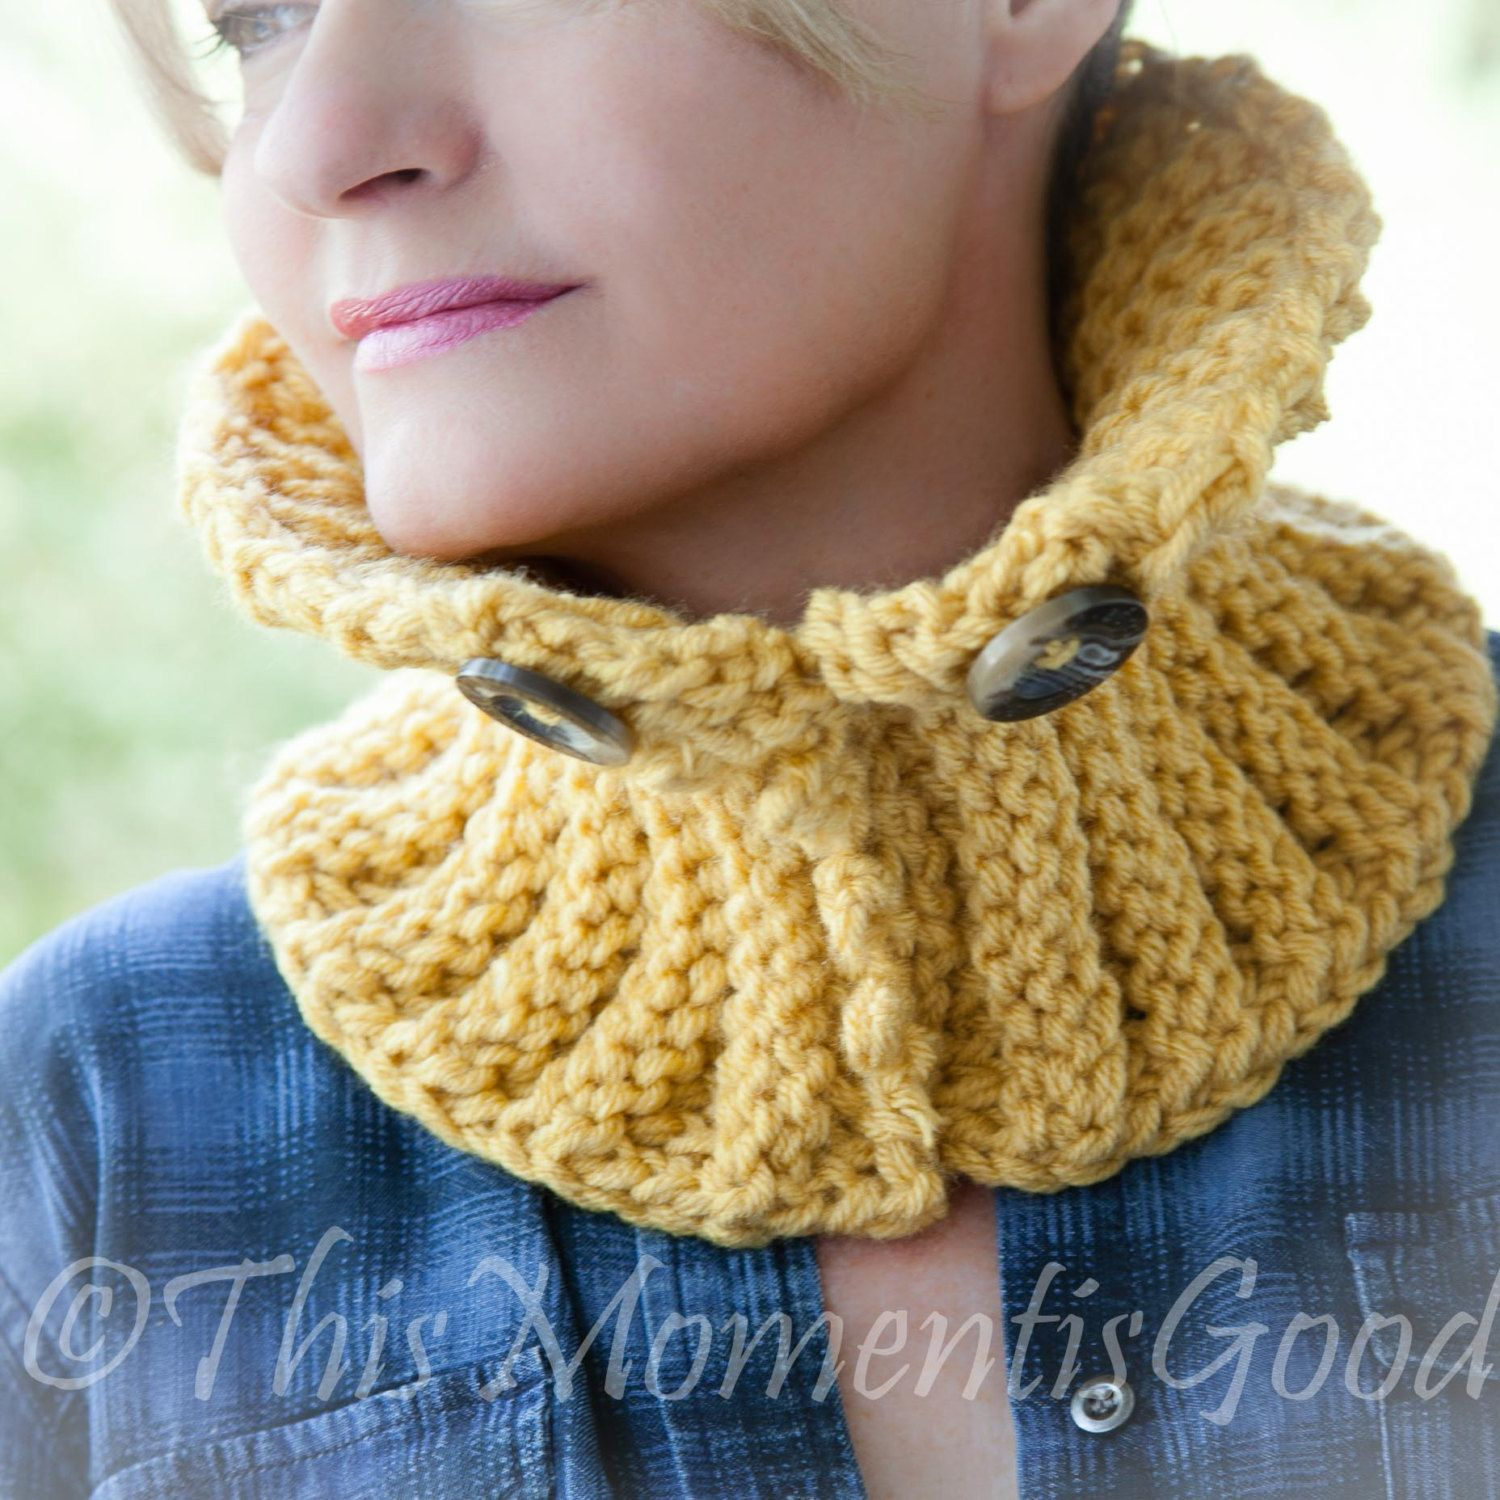 Loom Knit Picot Ribbed Cowl Pattern Sized For Toddler To Adult